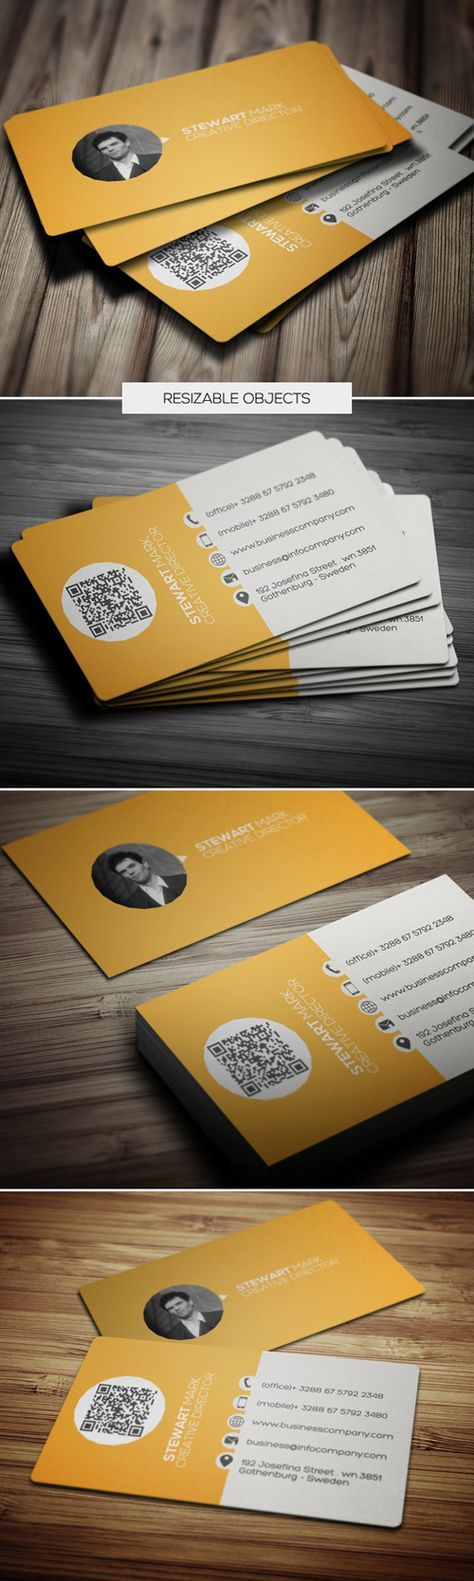 How Important Are Business Cards? | Unique business cards, Business ...